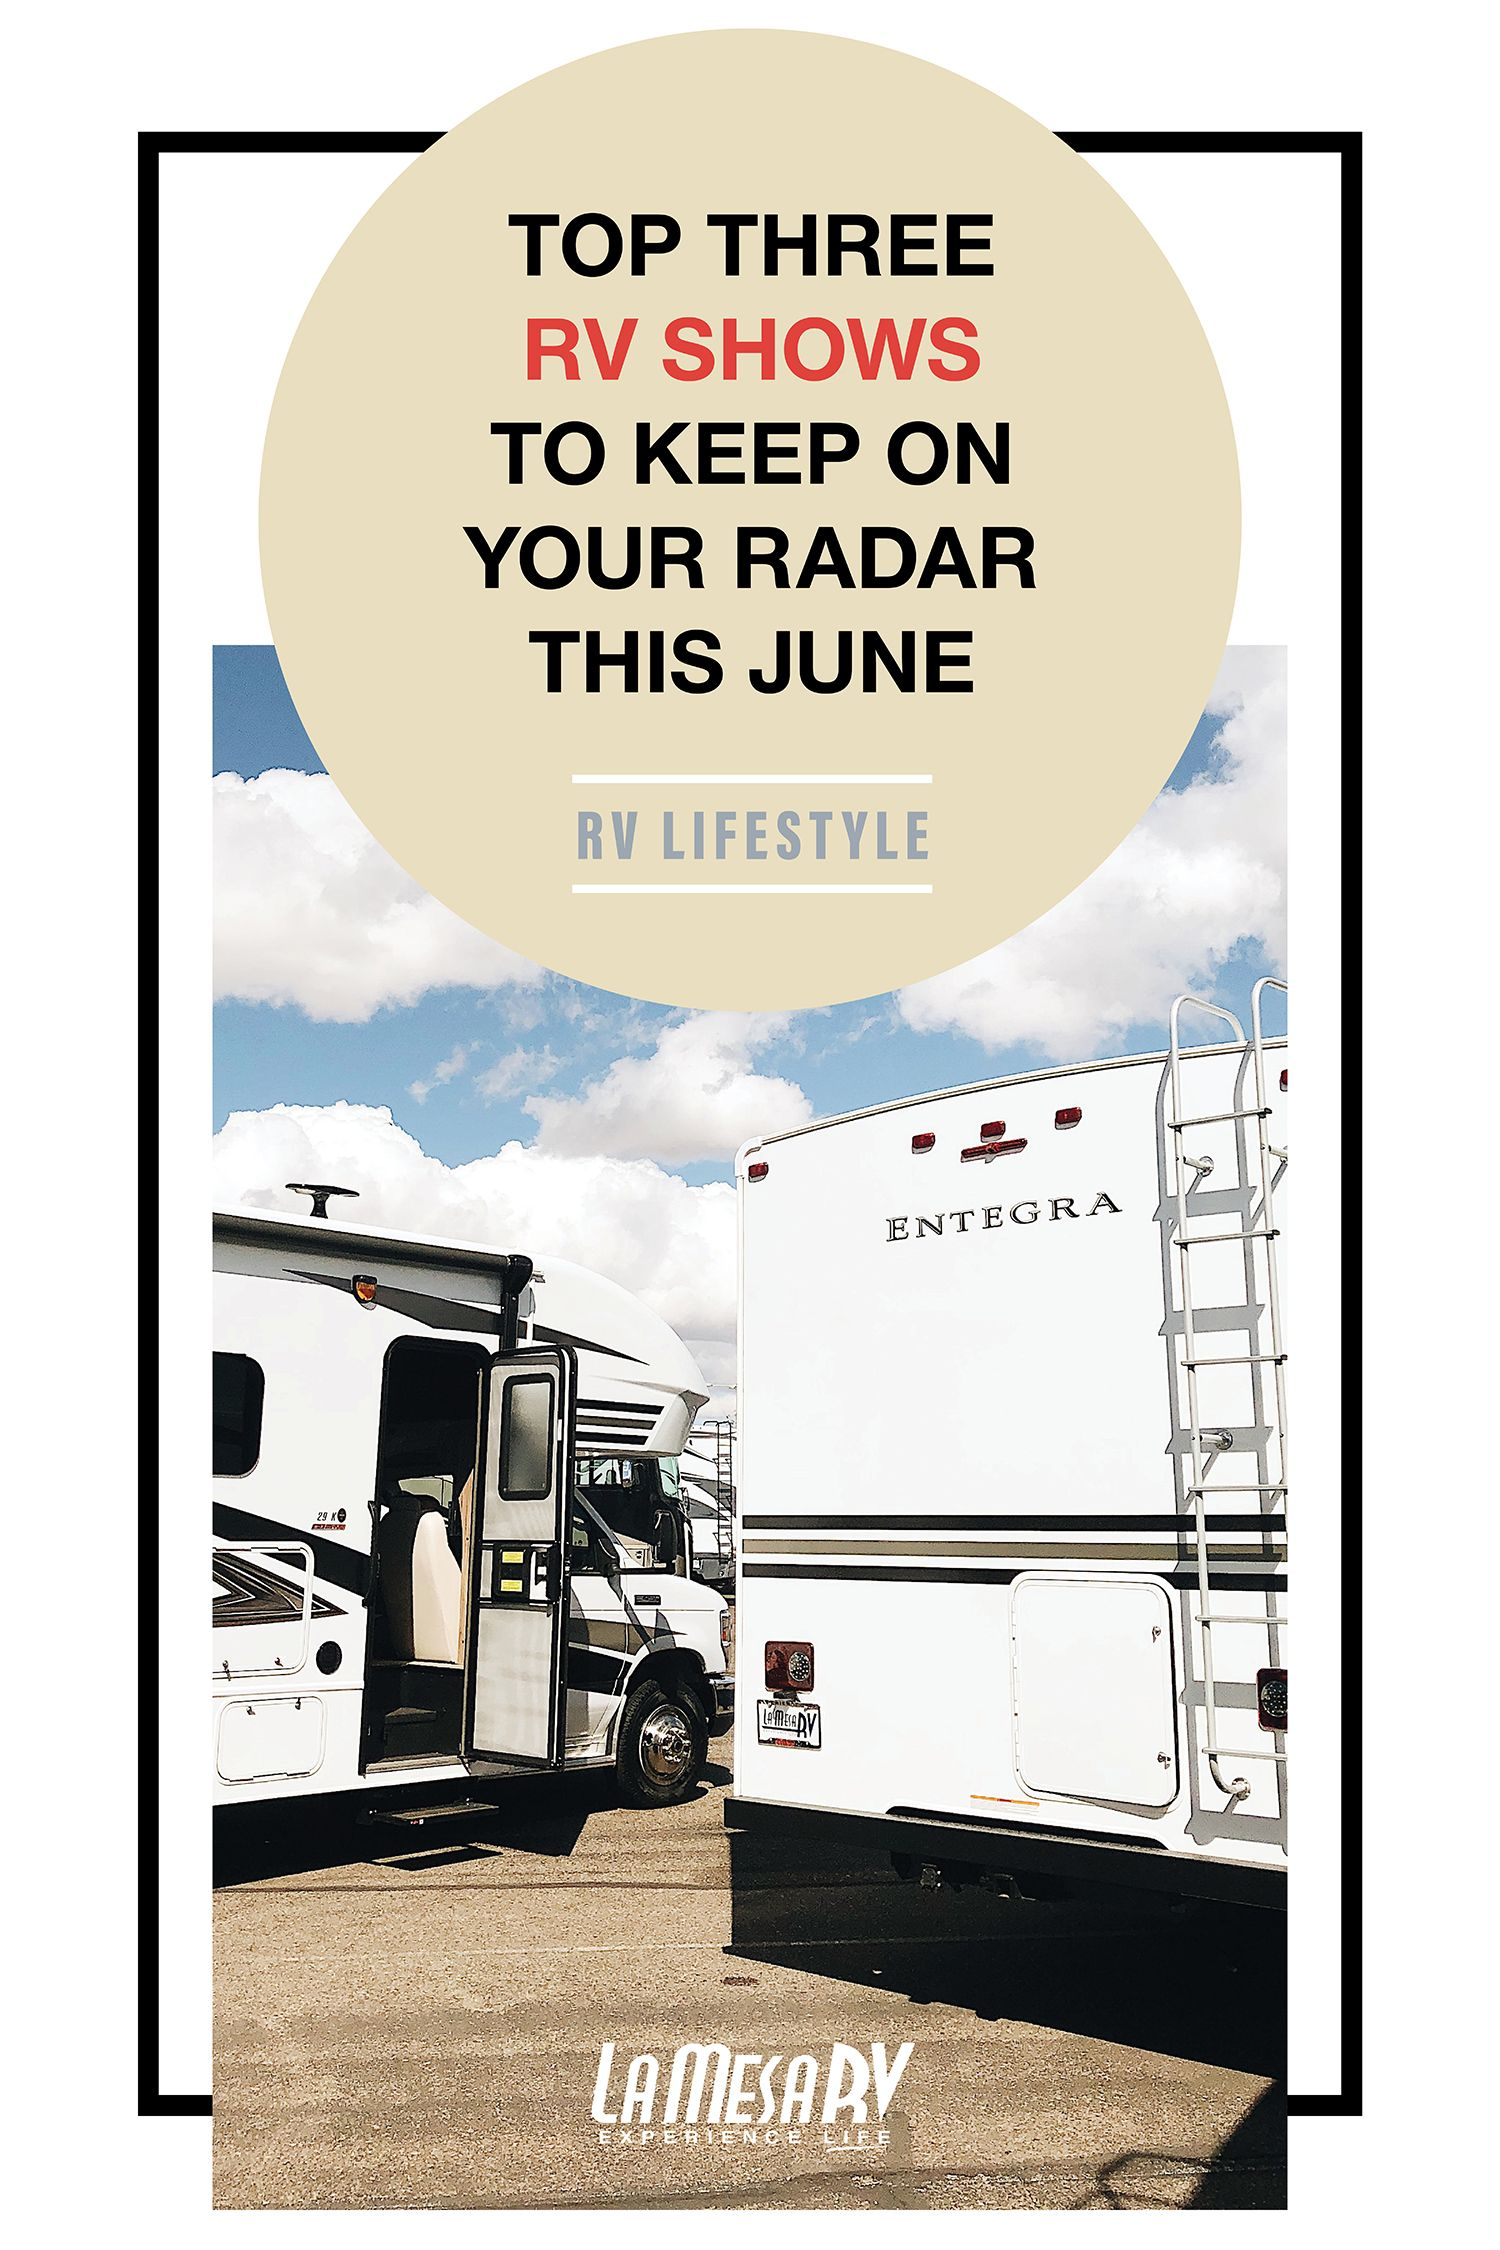 Ready To Upgrade Or Purchase Your Very First Rv This Warm Season Enjoy Massive Savings On The Rv Of Your Dreams With La Mesa R Rv Show Florida Rv Rv Lifestyle